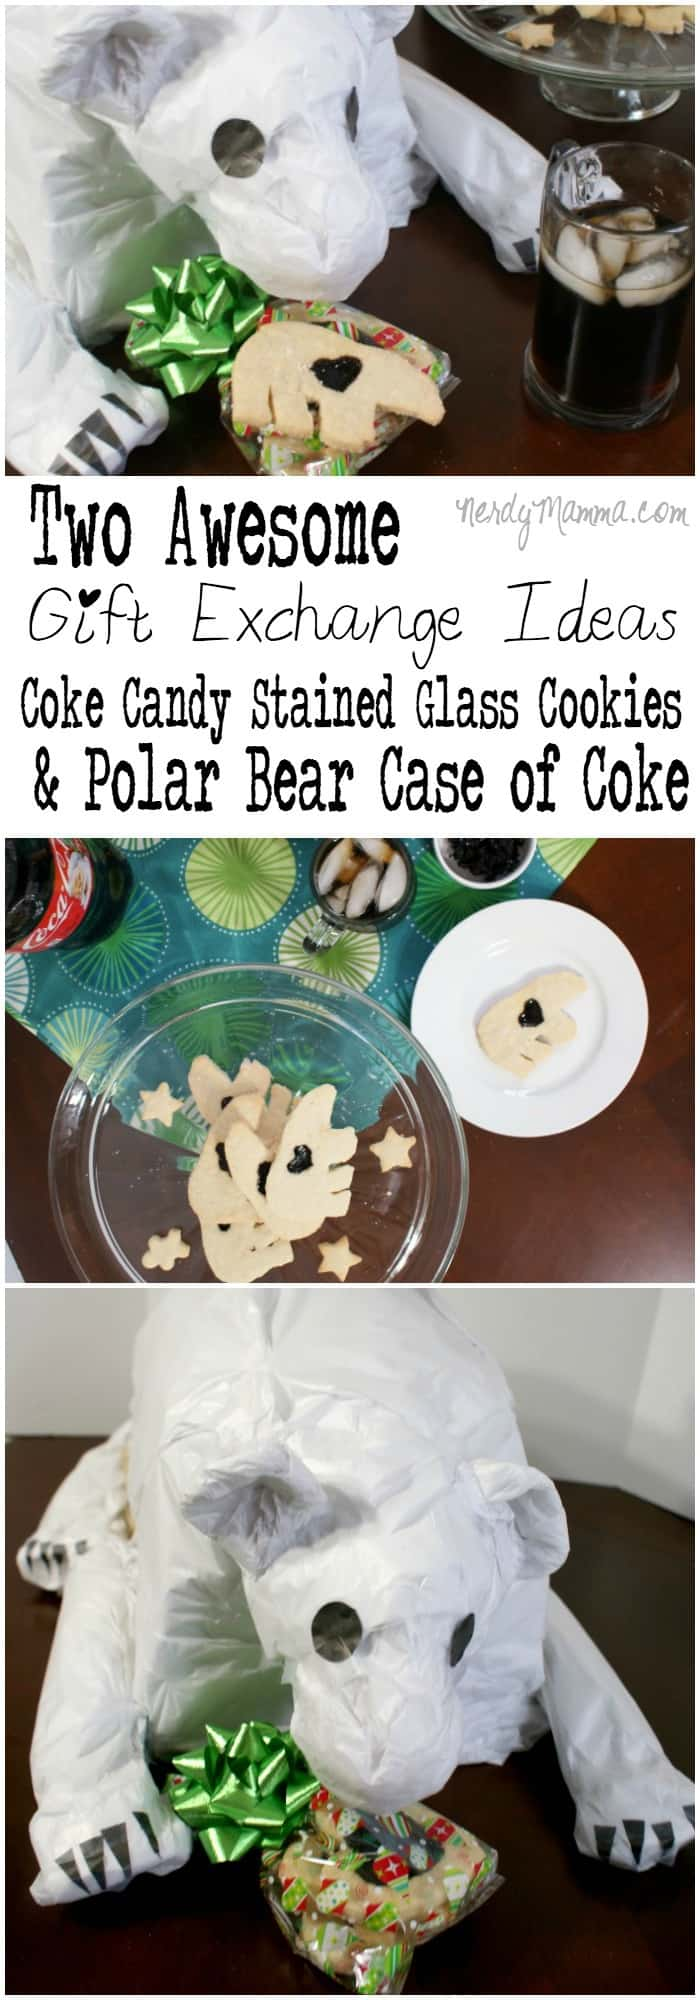 These two gift exchange ideas are truly awesome. I mean Coke Candy Stained Glass Cookies and a Polar Bear shaped 24-pack of coke Awesome is so the best word for this ever.